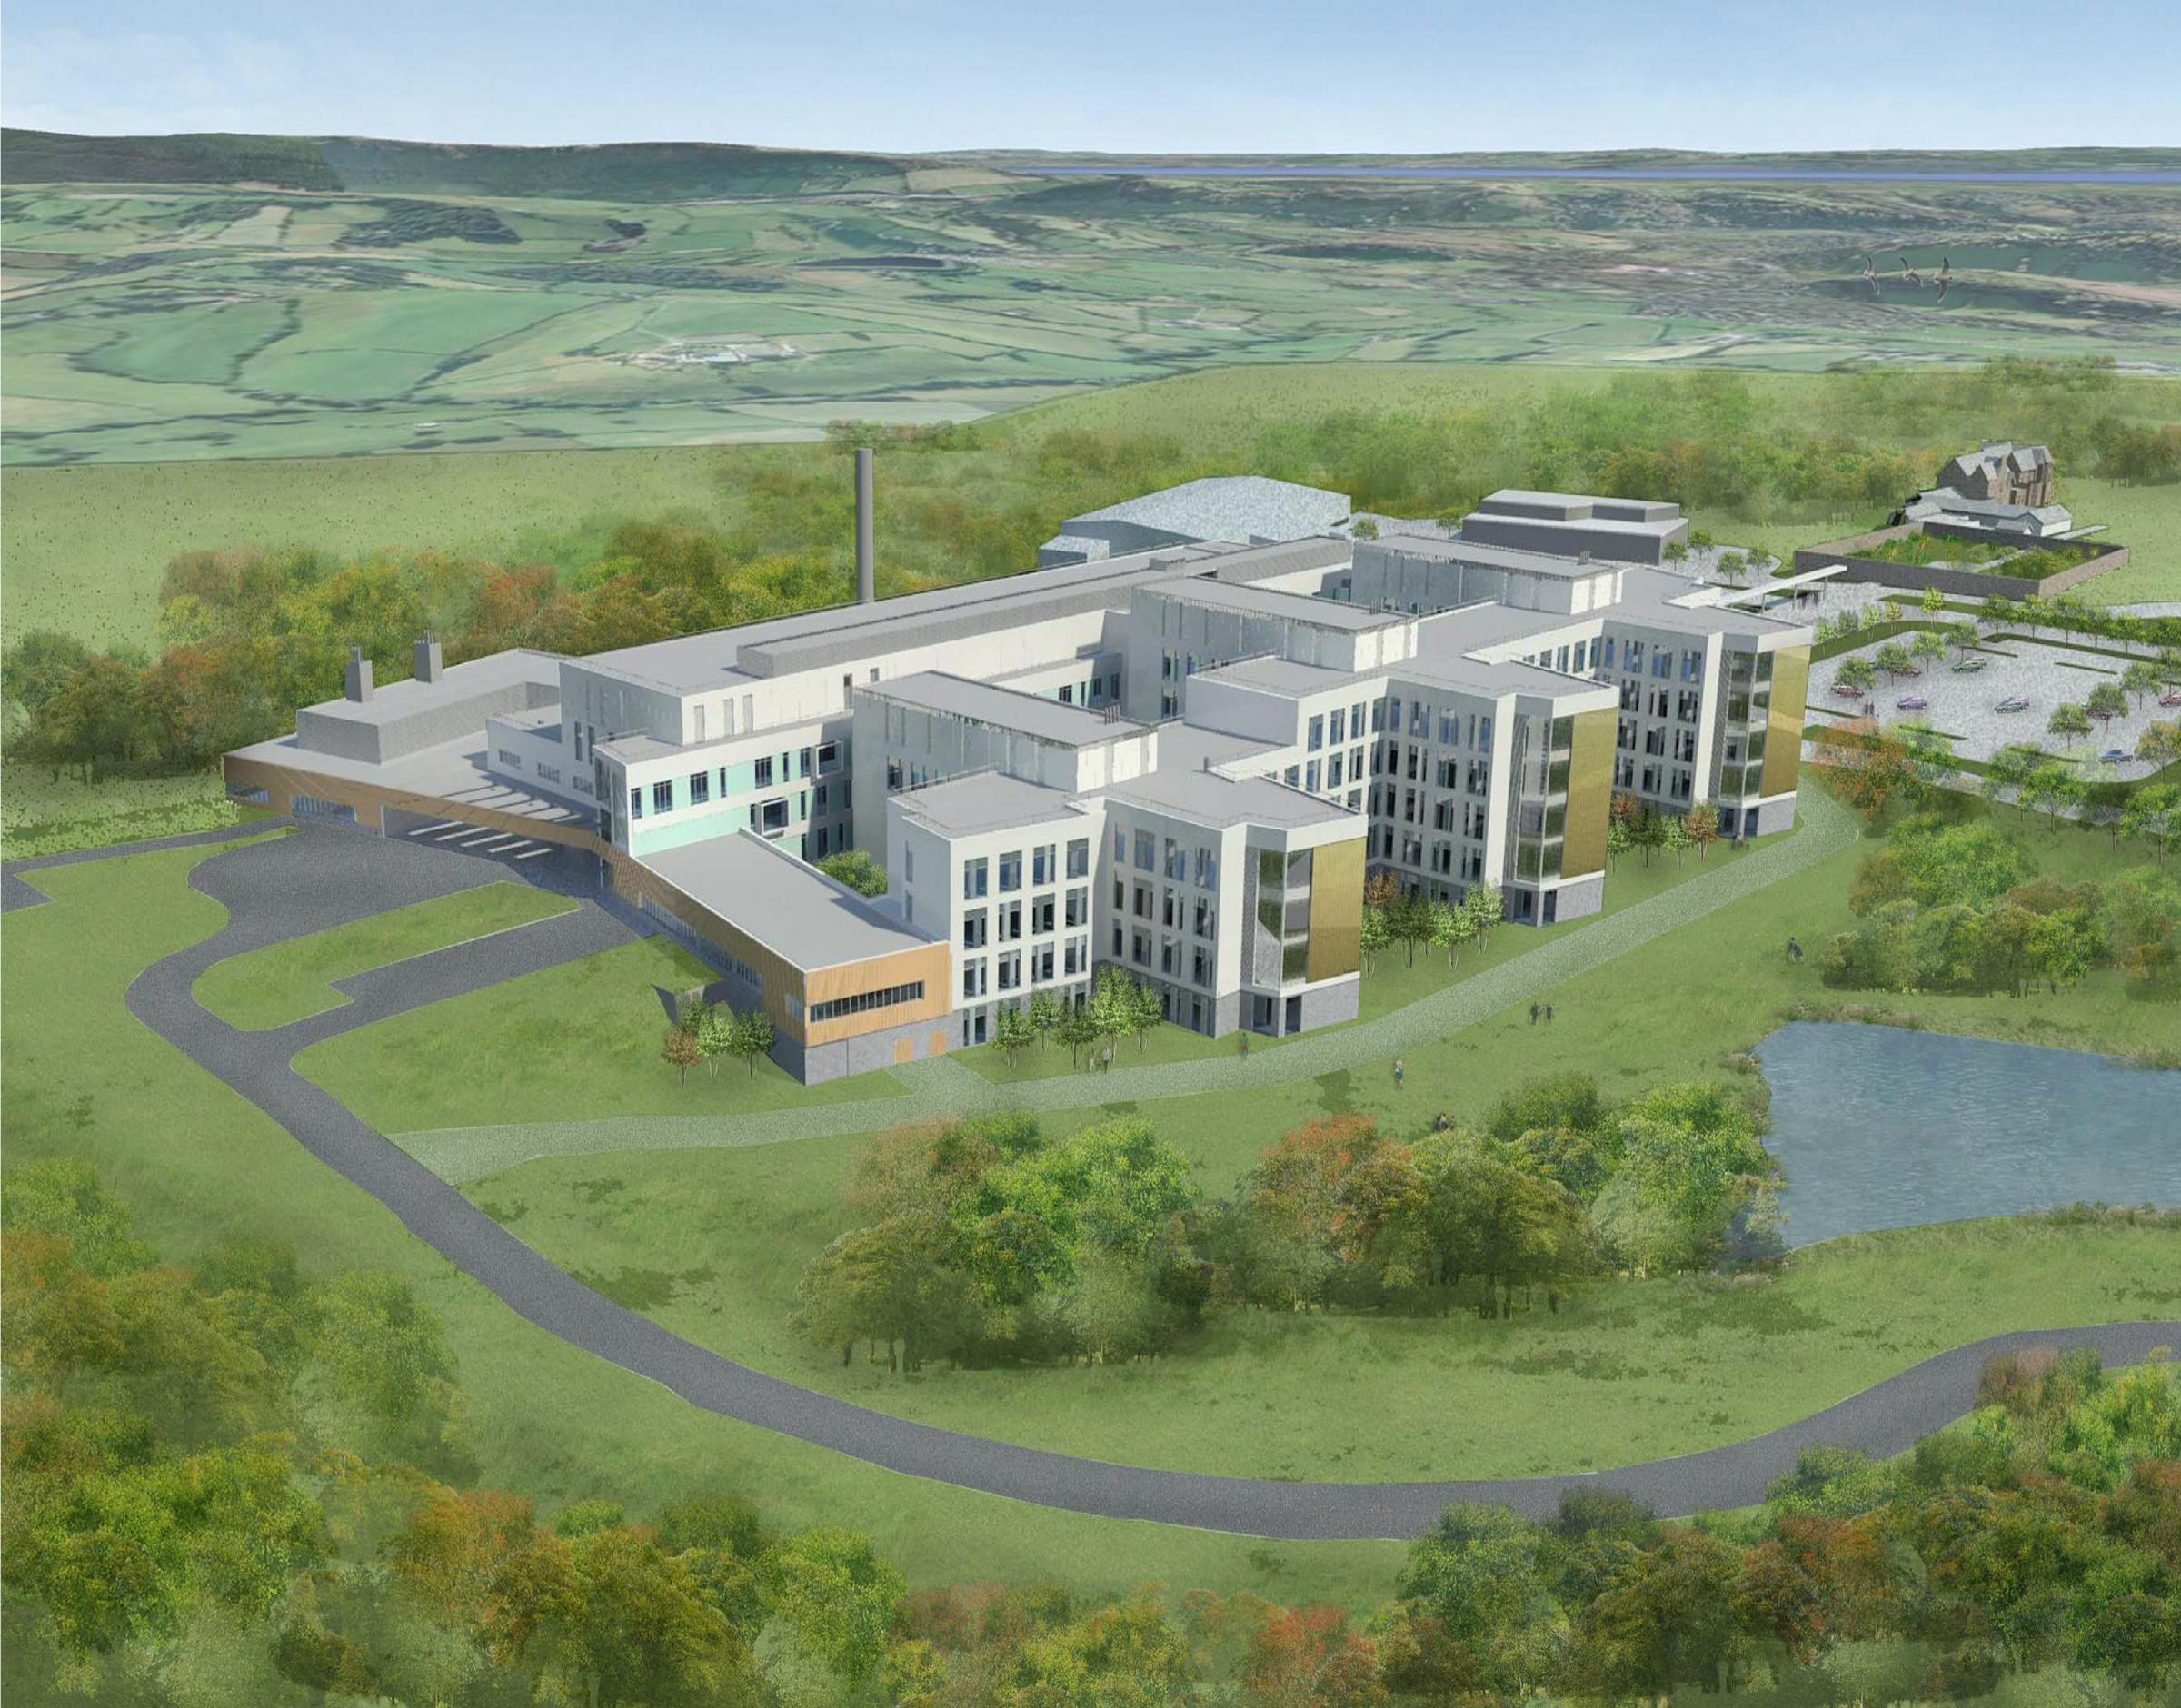 SUBMITTED PIC.ARTIST IMPRESSION OF SPECIALIST AND CRITICAL CARE CENTRE ON THE FORMER LLANFRECHFA GRANGE HOSPITAL SITE NEAR CWMBRAN.